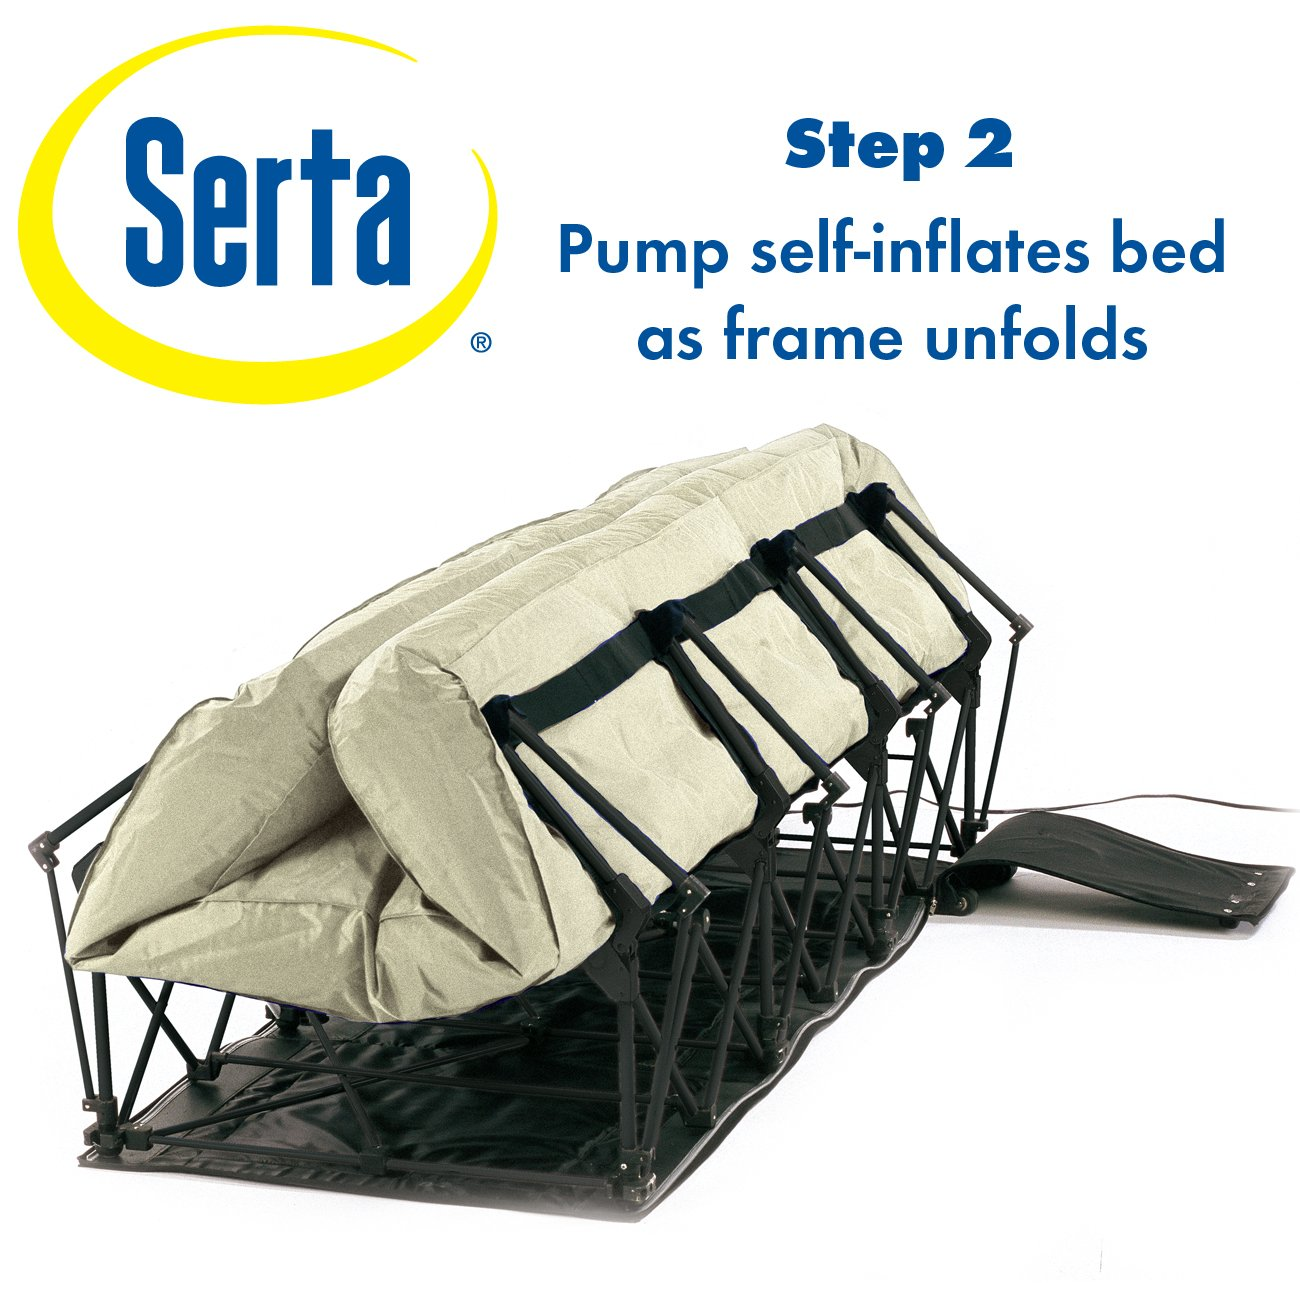 Amazon.com: Serta EZ Air Mattress with Never Flat Pump: Sports & Outdoors